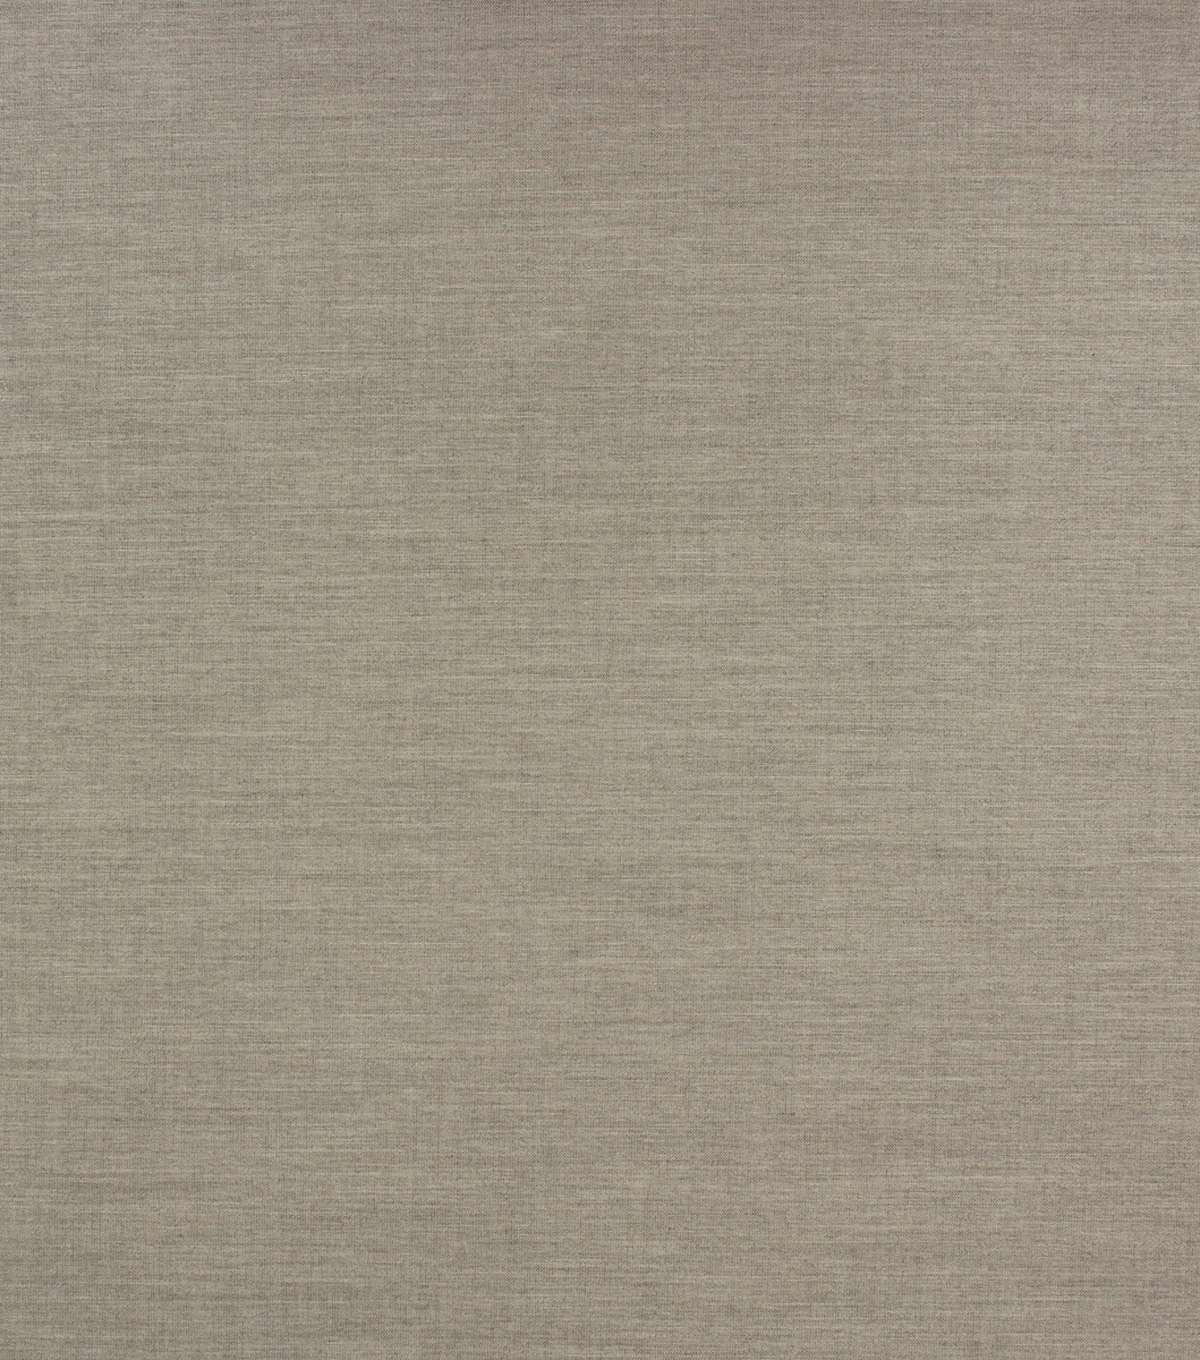 Optimum Performance Multi-Purpose Decor Fabric 54\u0027\u0027-Stone